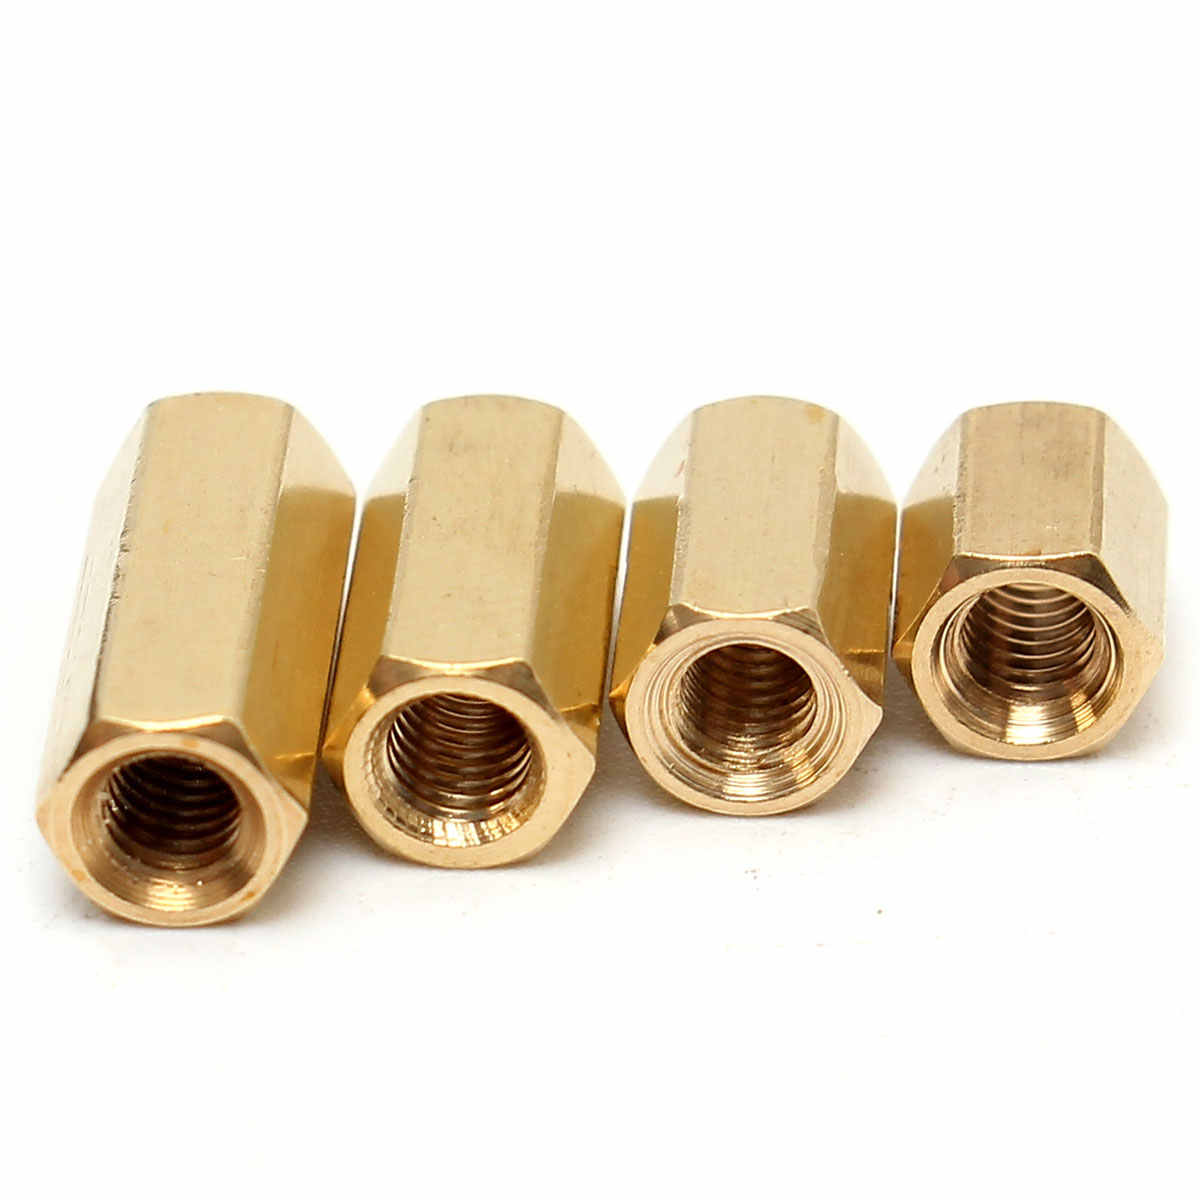 50Pcs Brass Hexagonal Female Nut M3 x 4/5/6/8/10/12mm Female Nut Bolts PCB Board Standoff/Spacer